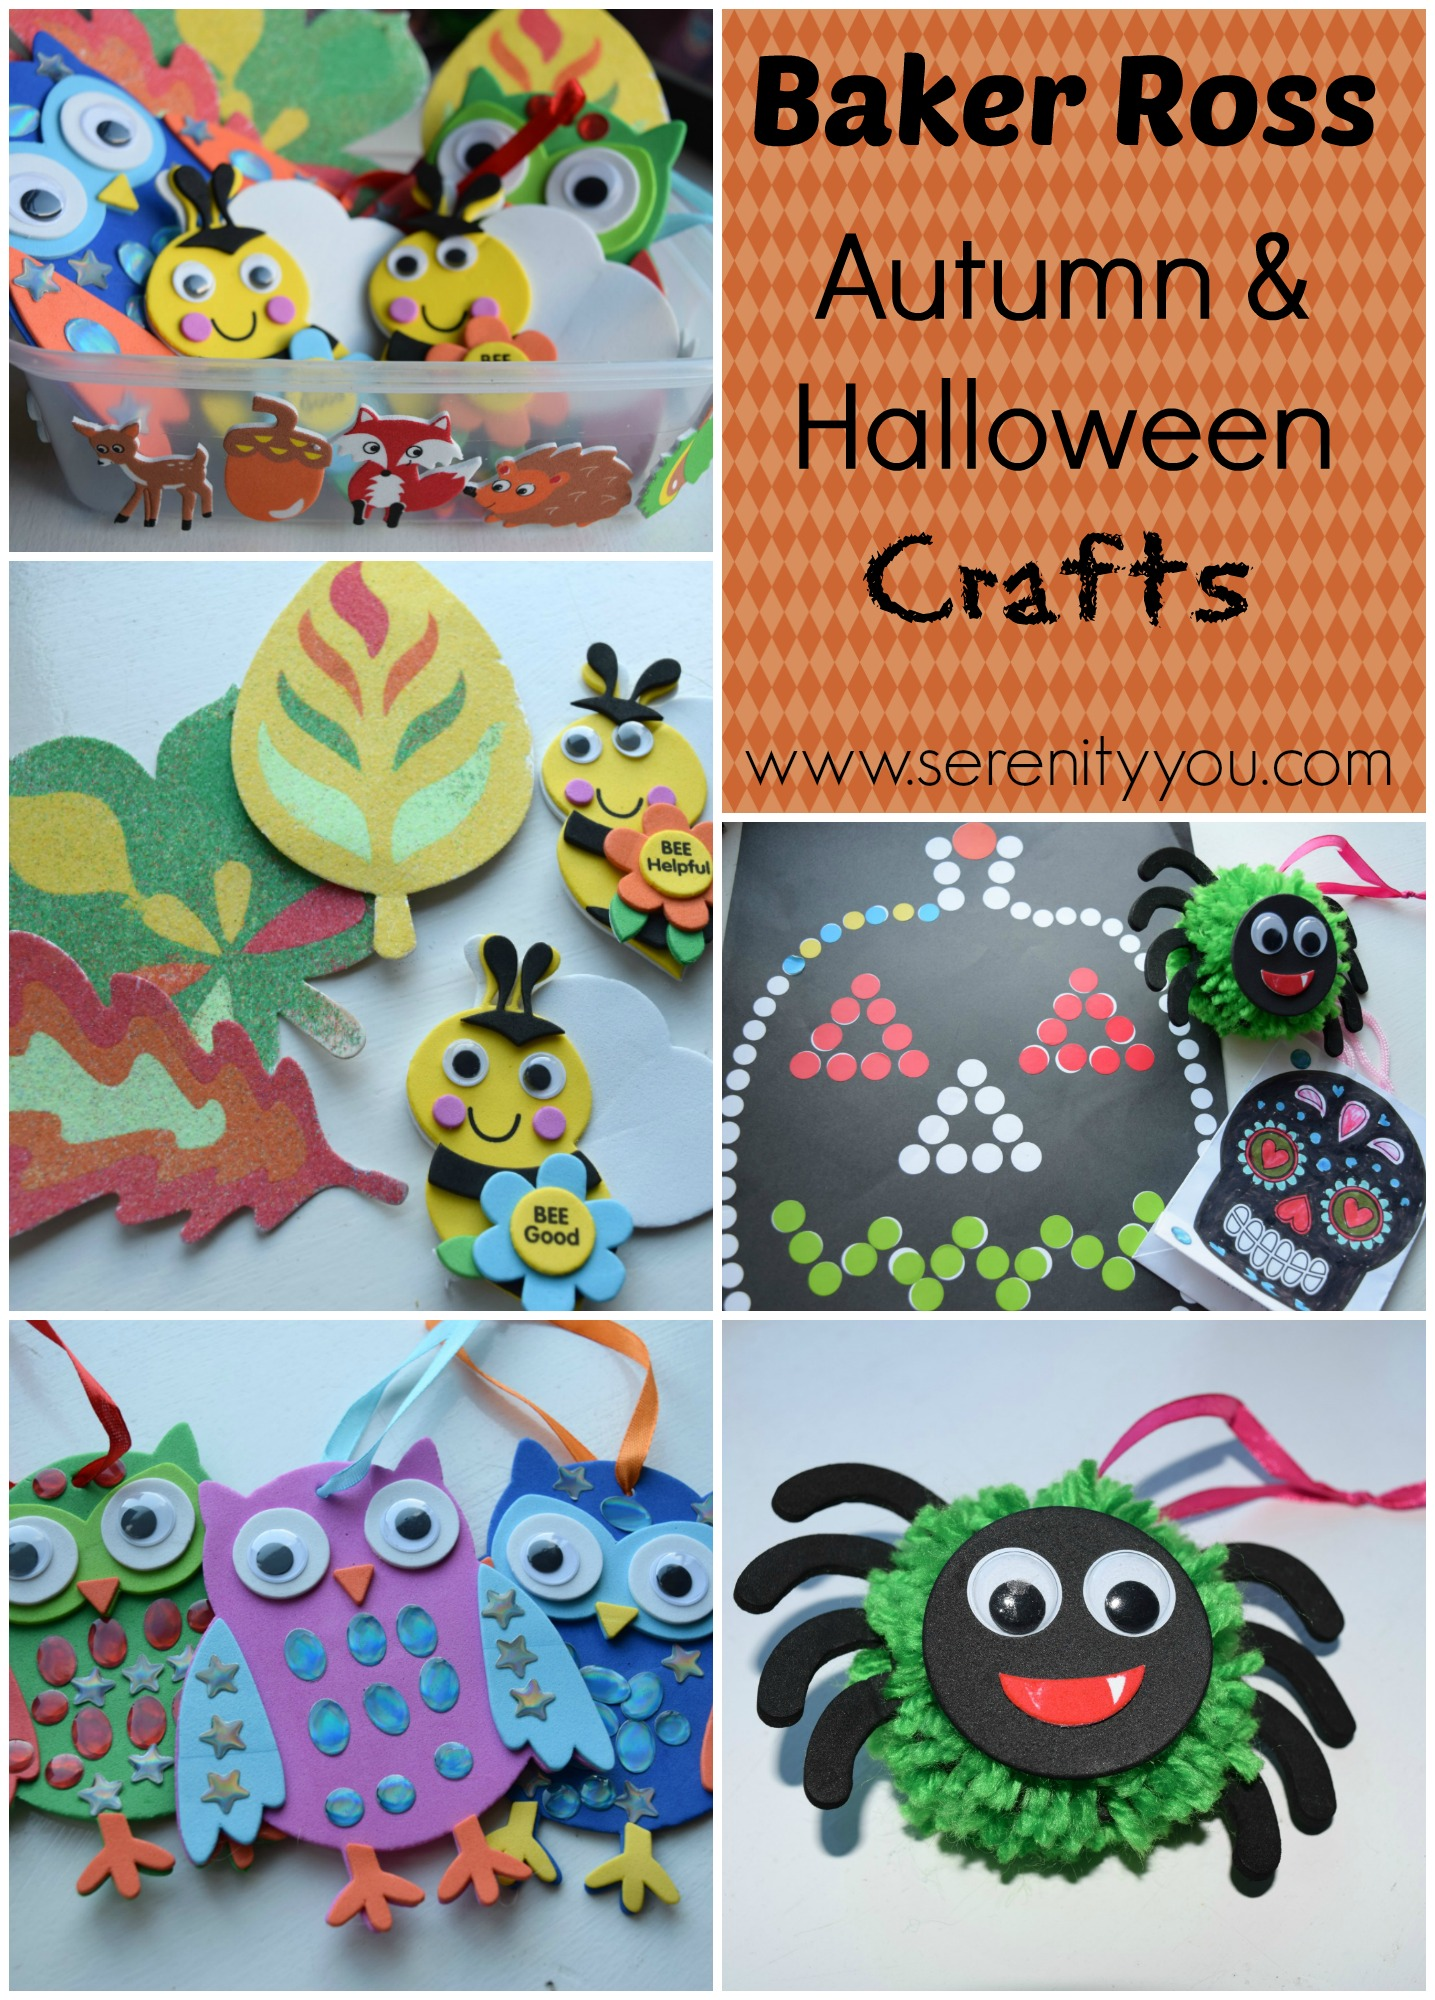 Baker ross autumn halloween crafts